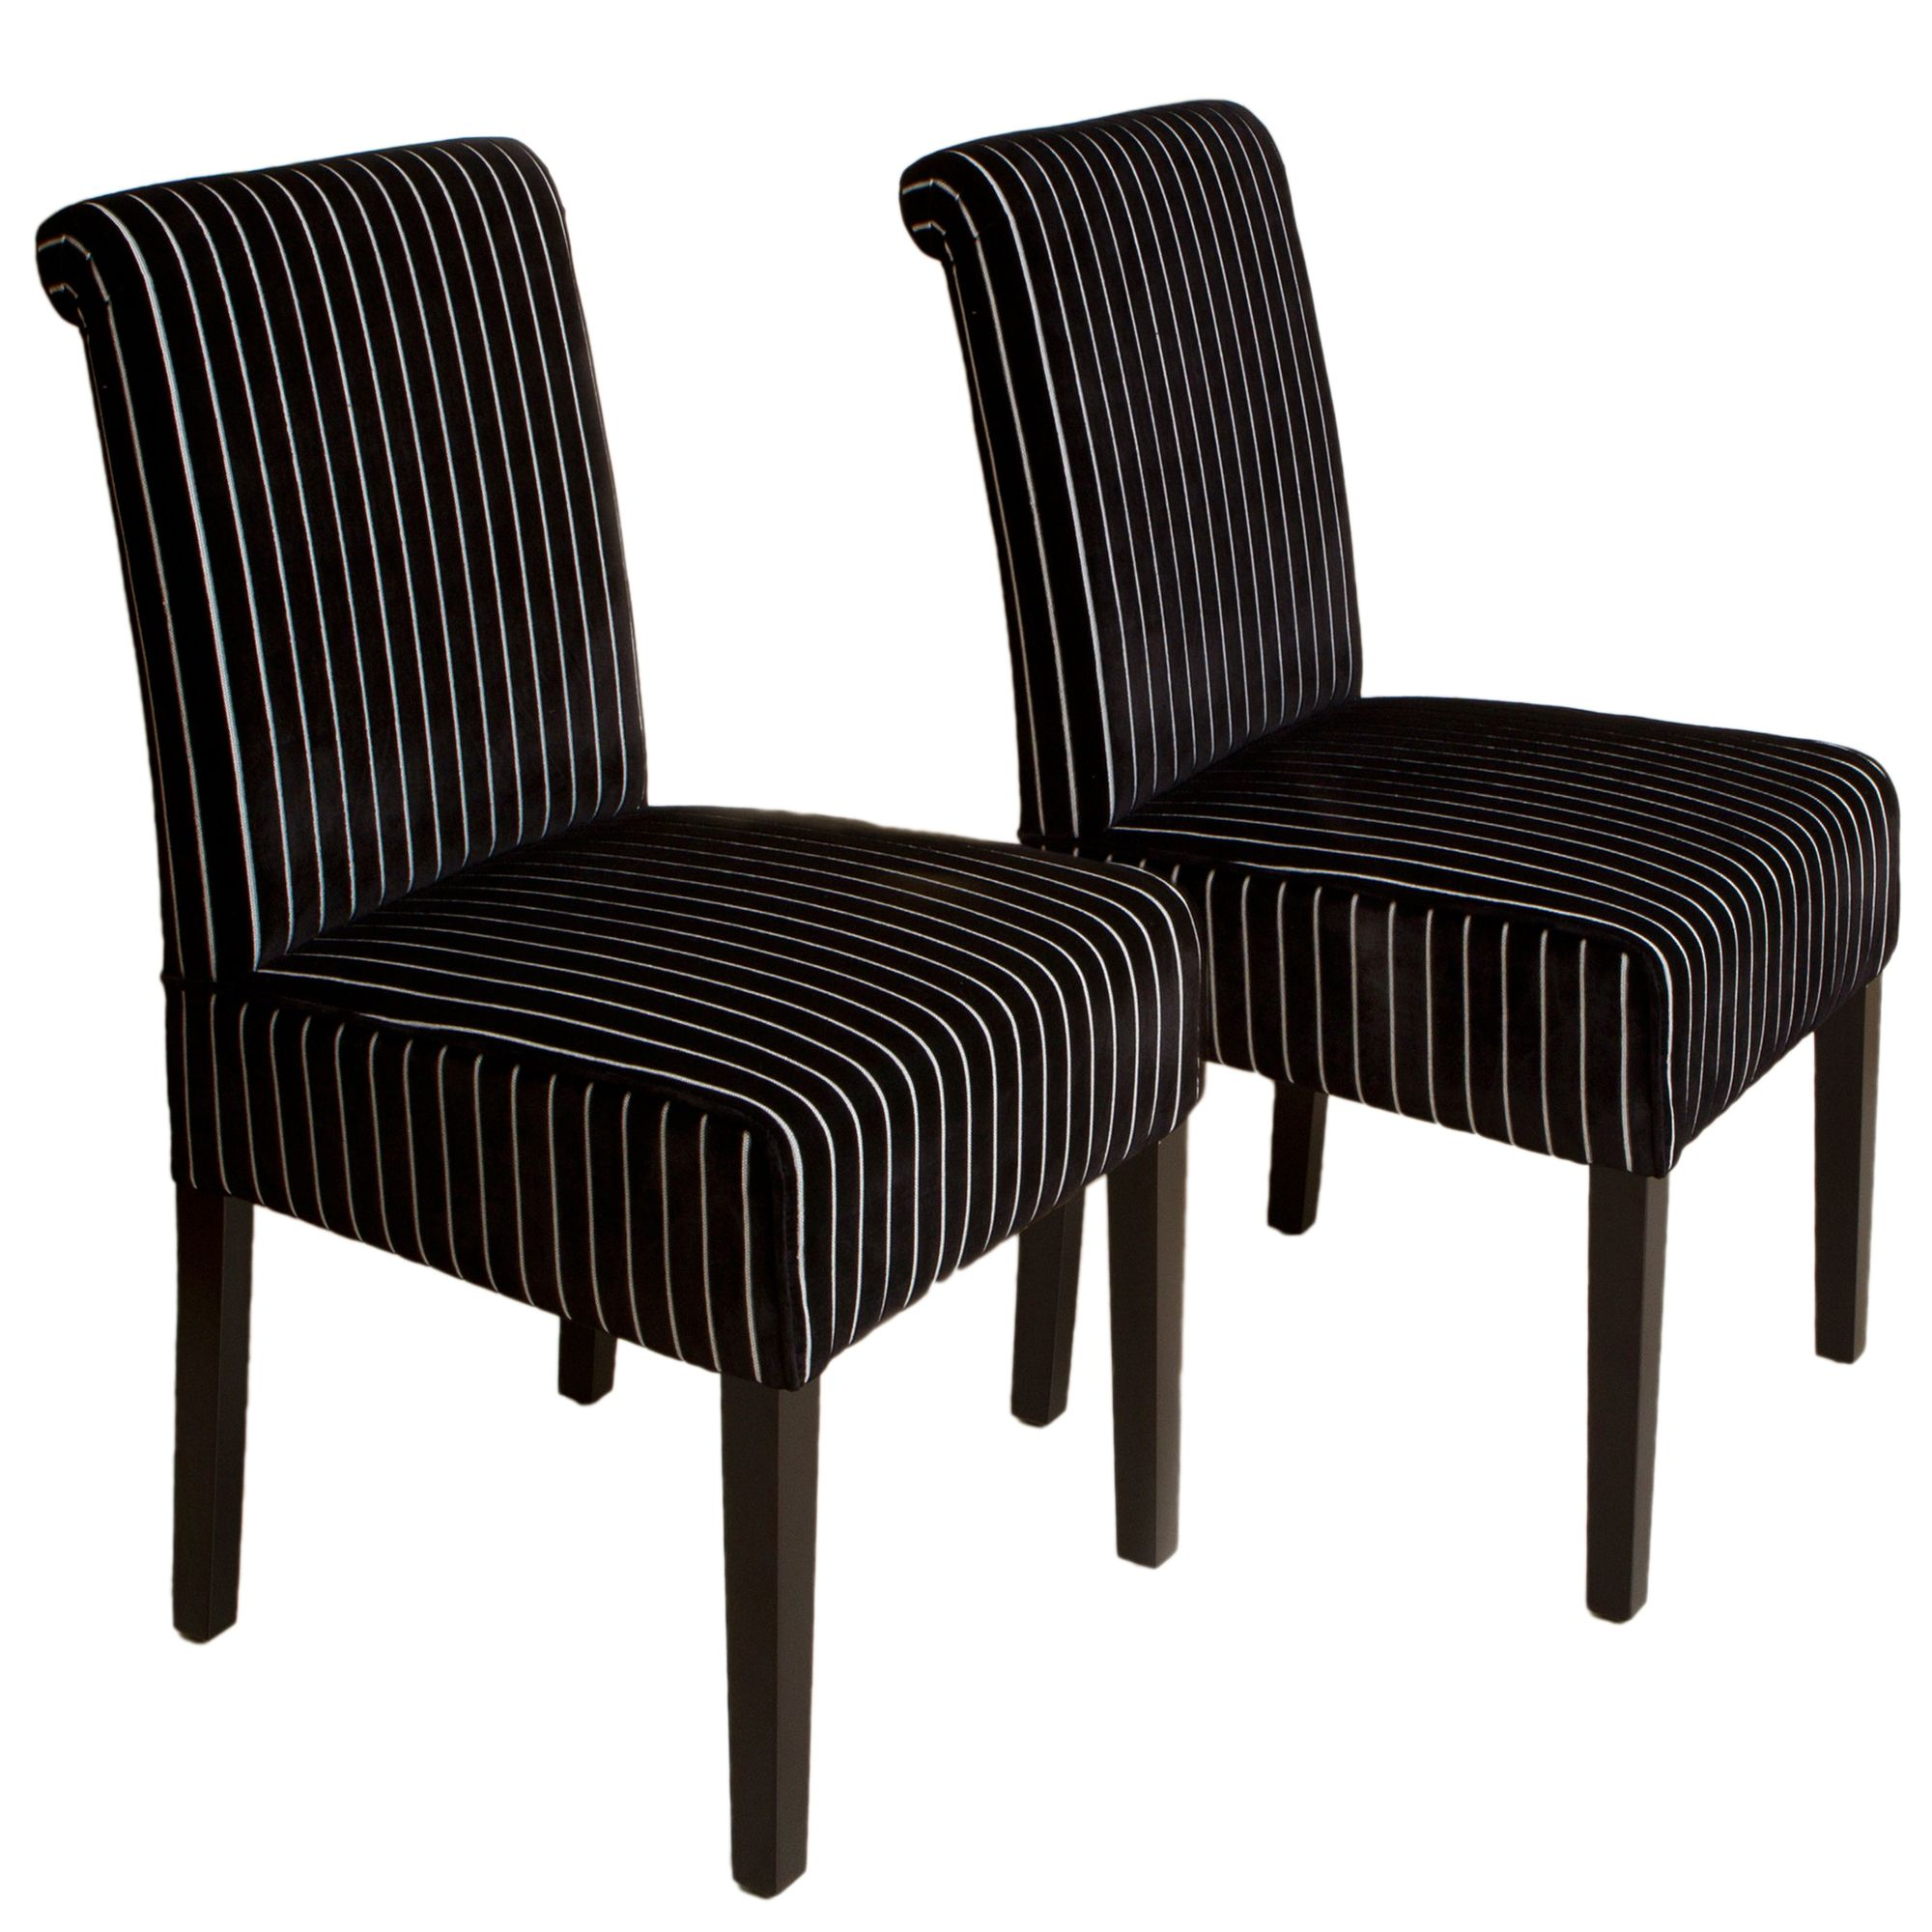 Home Loft Concept Rolled Back Dining Chair In Black And White Set Of 2